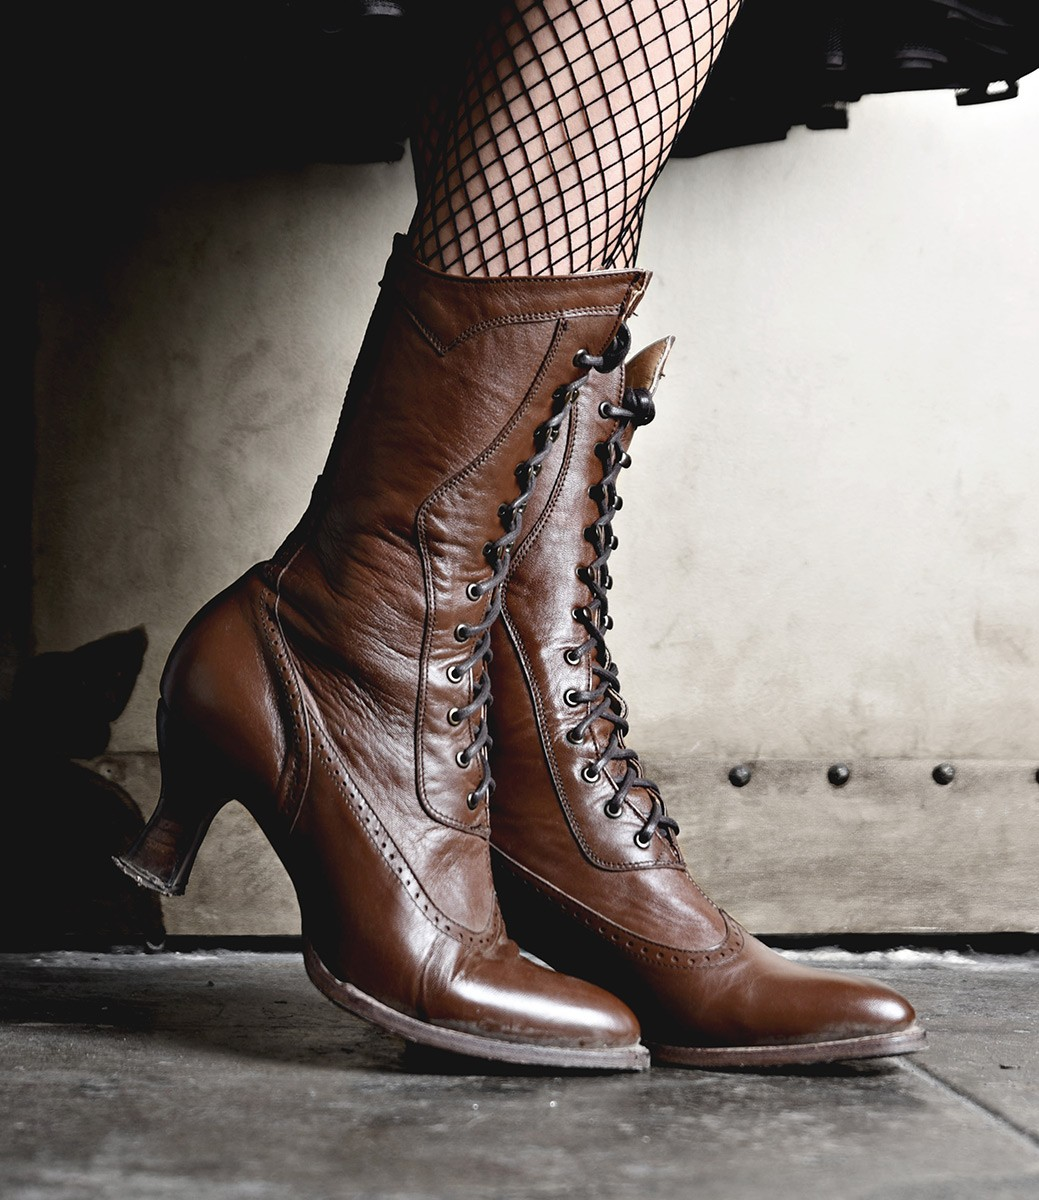 Vintage Boots- Winter Rain and Snow Boots Modern Victorian Lace Up Leather Boots in Cognac $255.00 AT vintagedancer.com